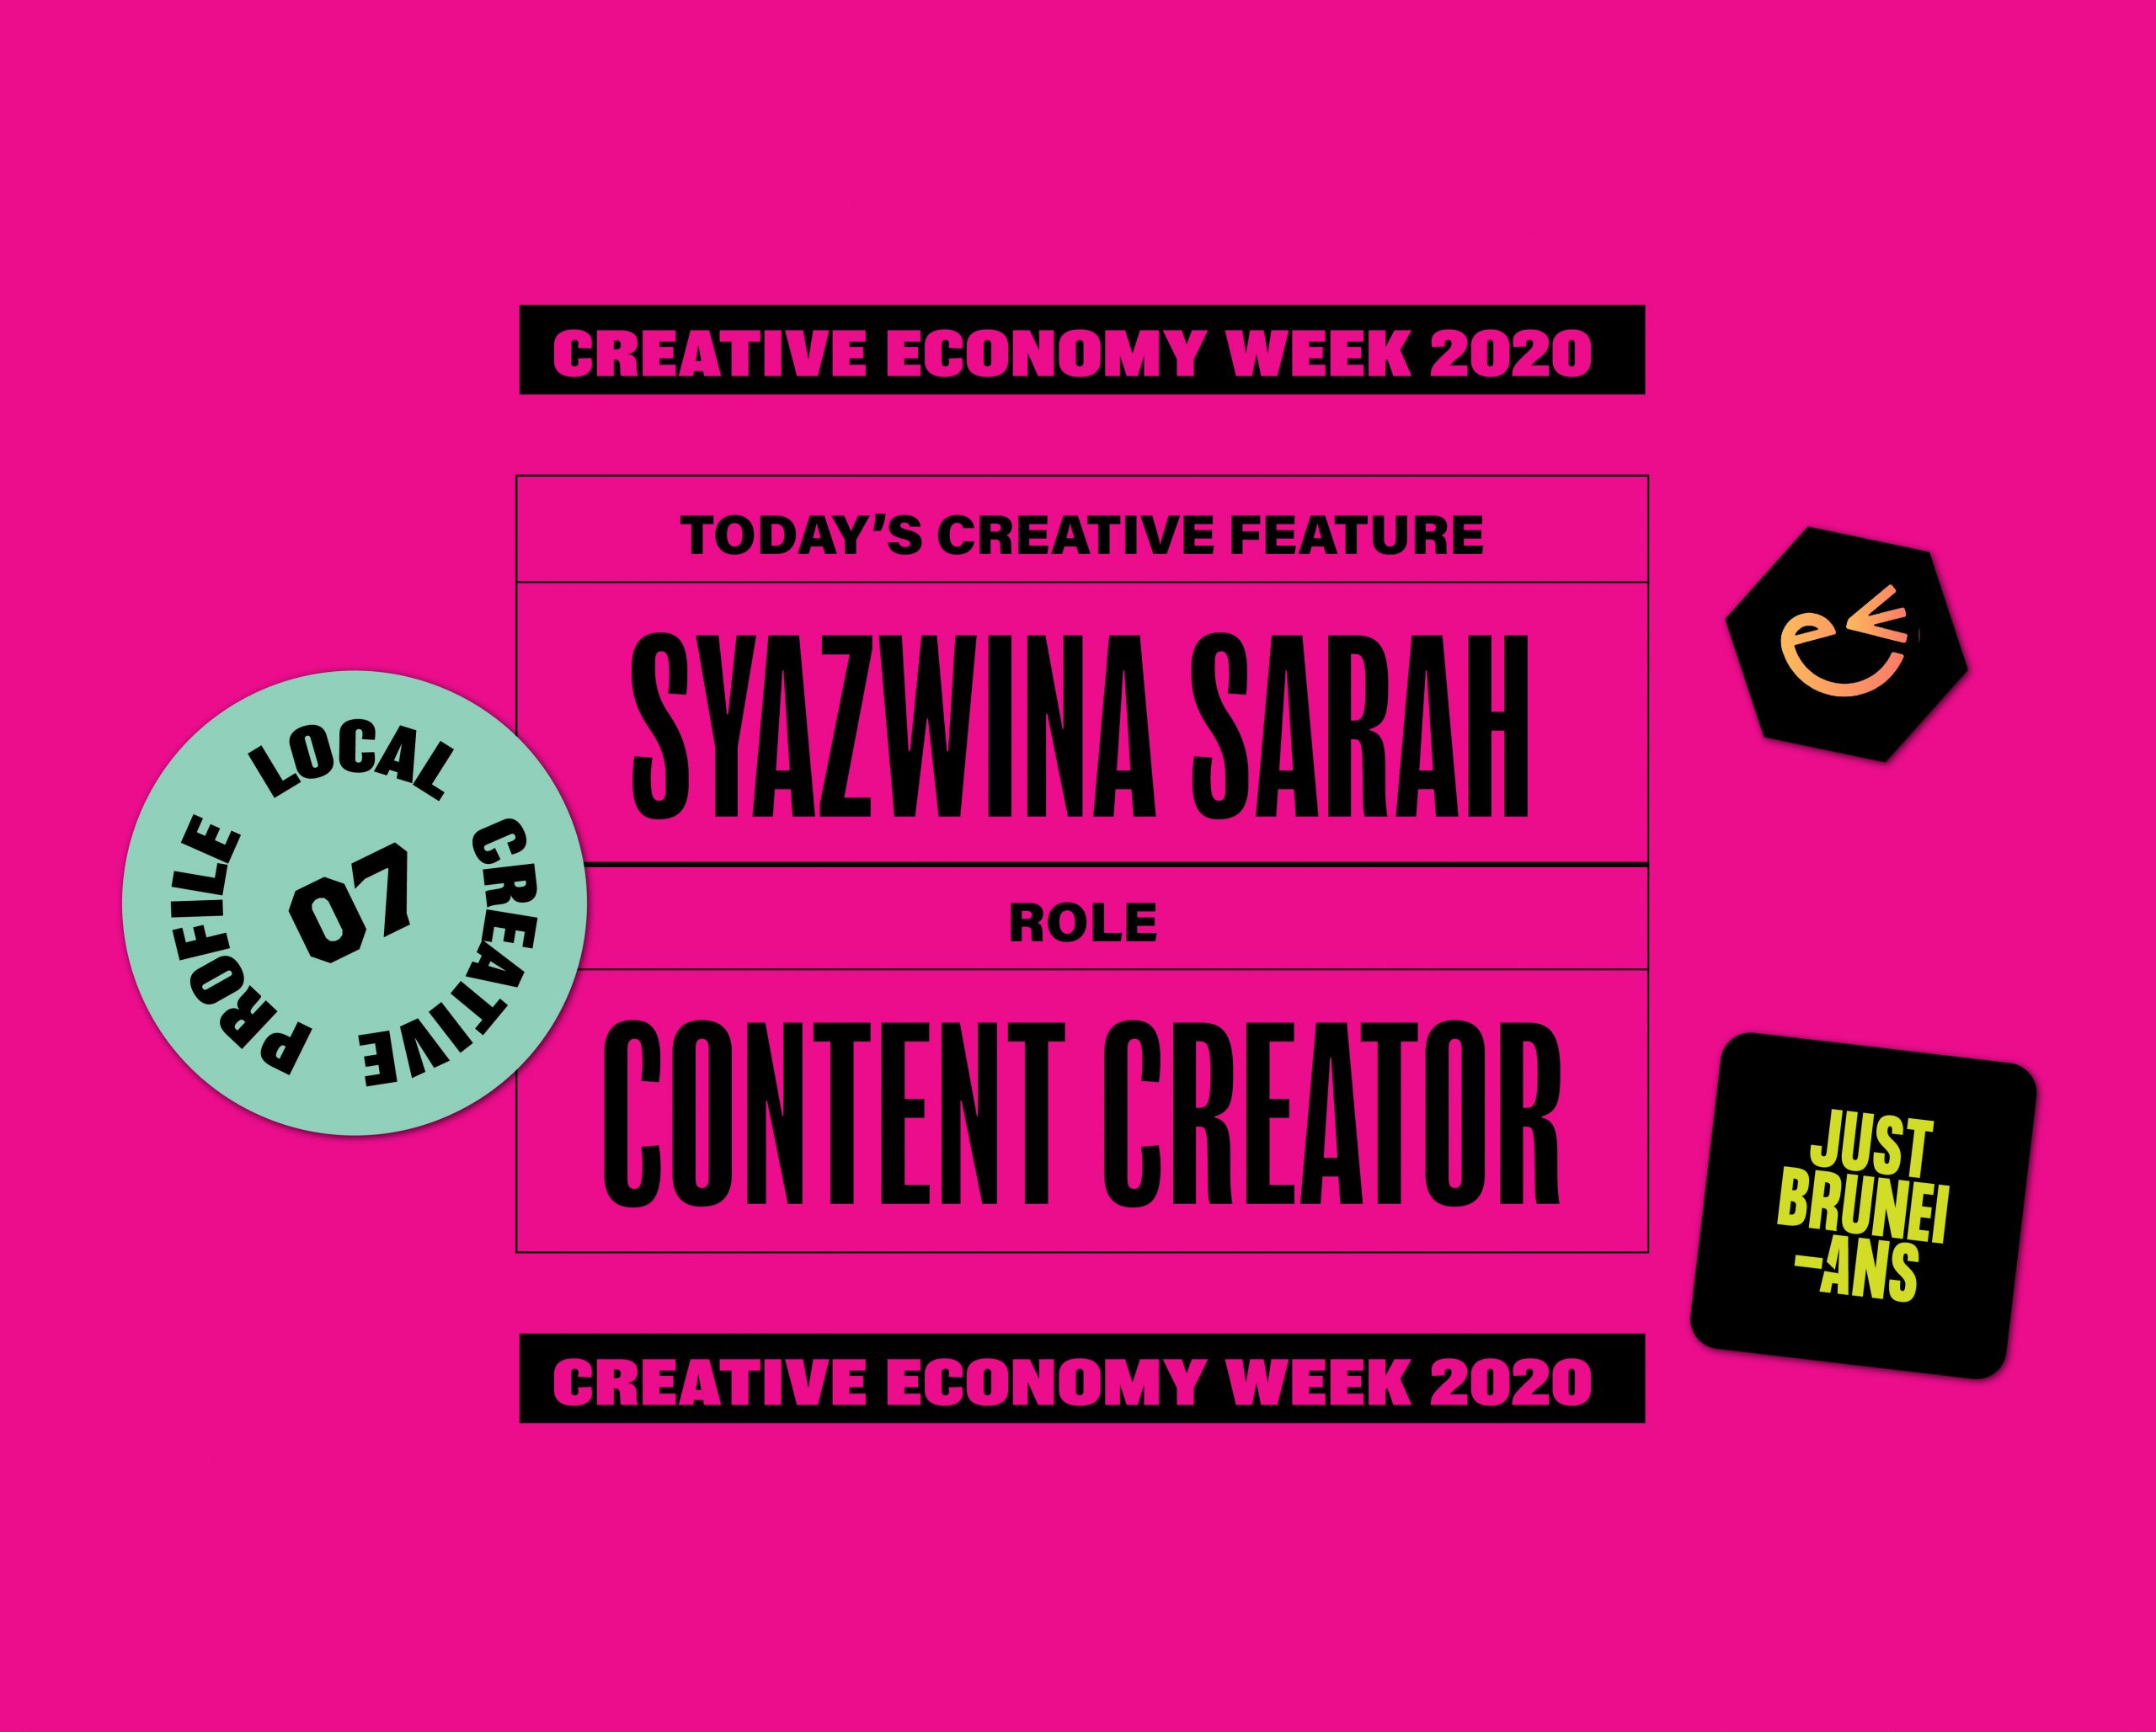 Today's Creative Feature: Syazwina Sarah | Creative Economy Week 2020